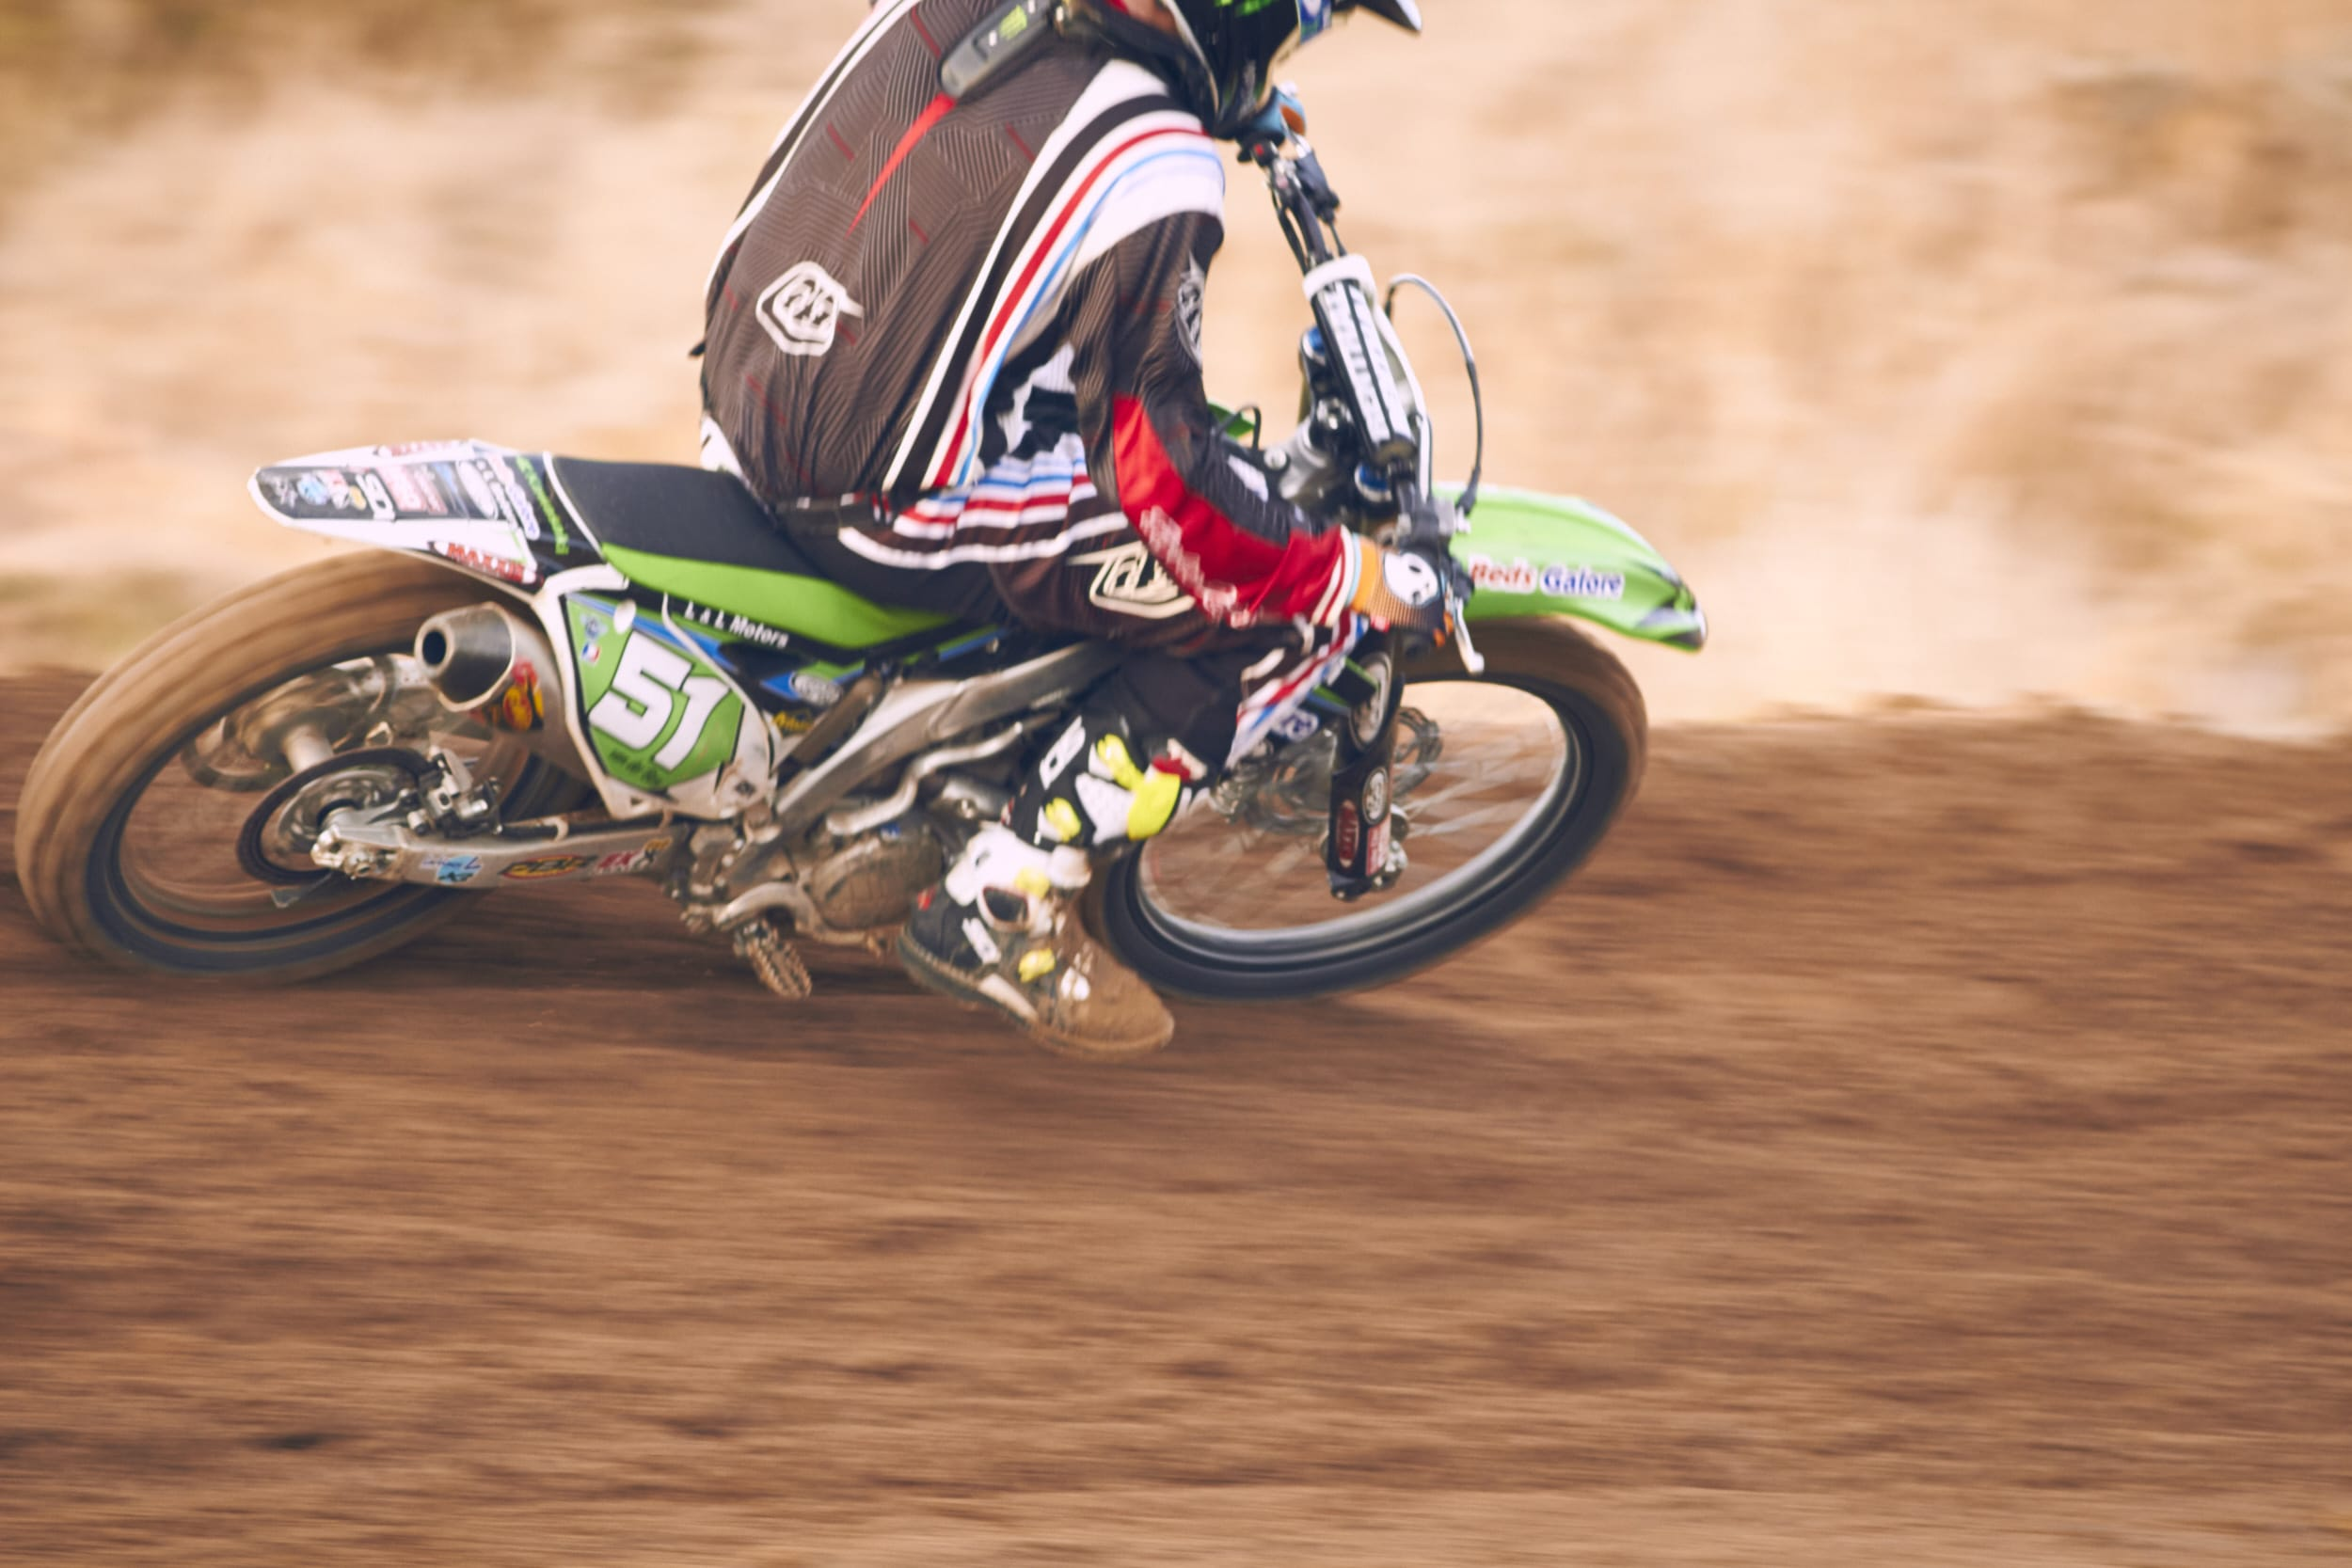 cpt_motorcross 203 ©martinsass